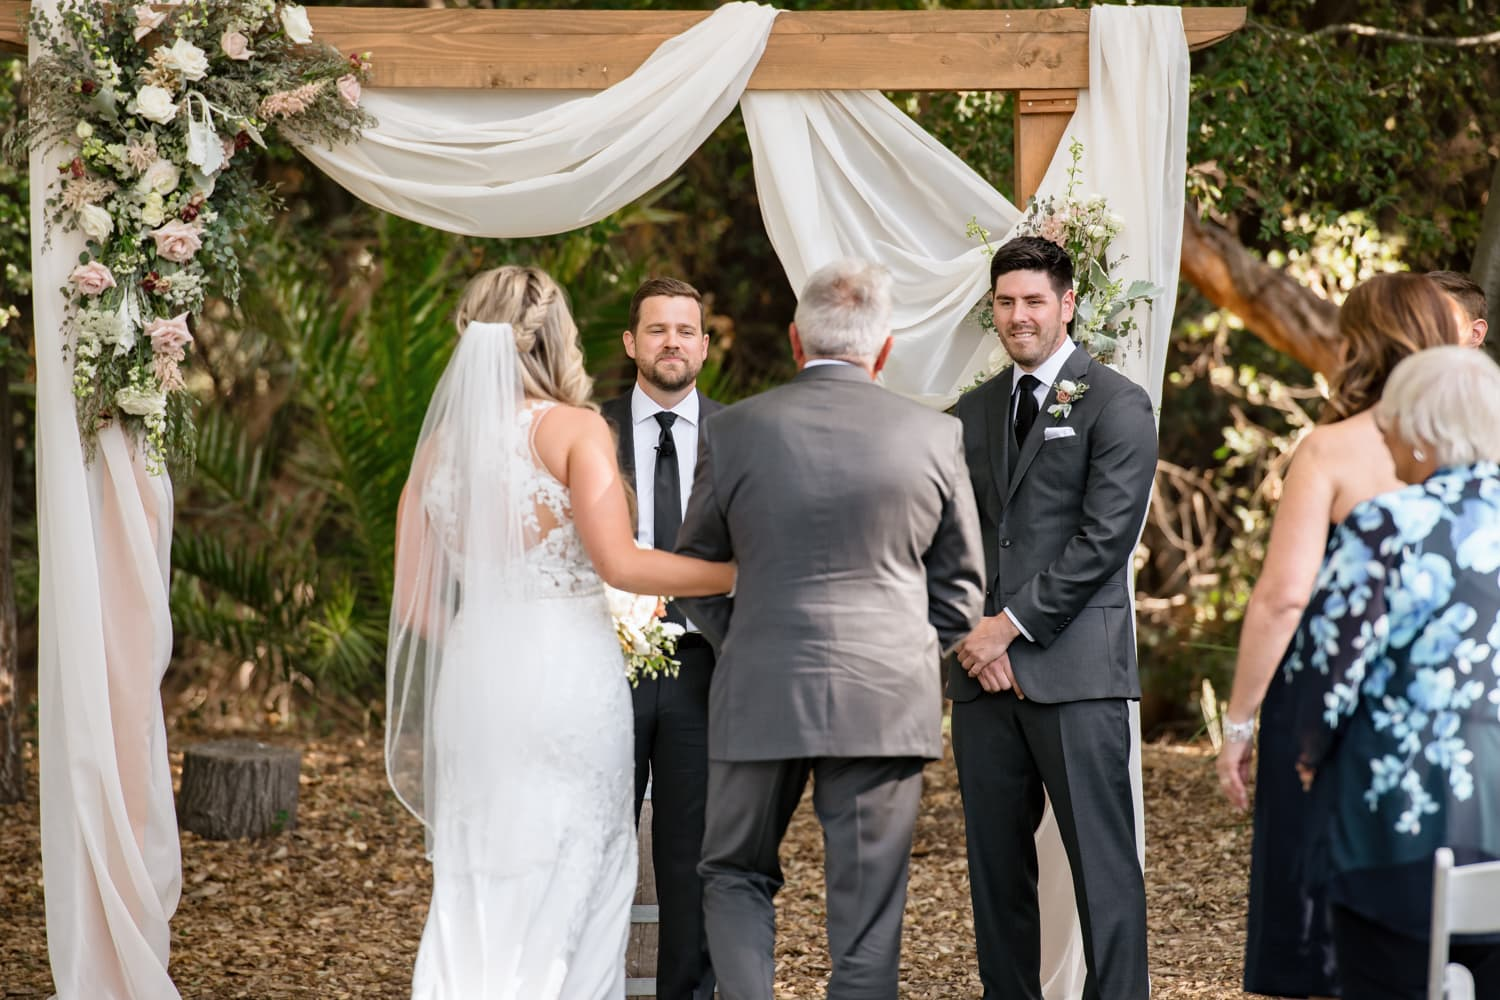 Father giving bride to groom at Stone House ceremony